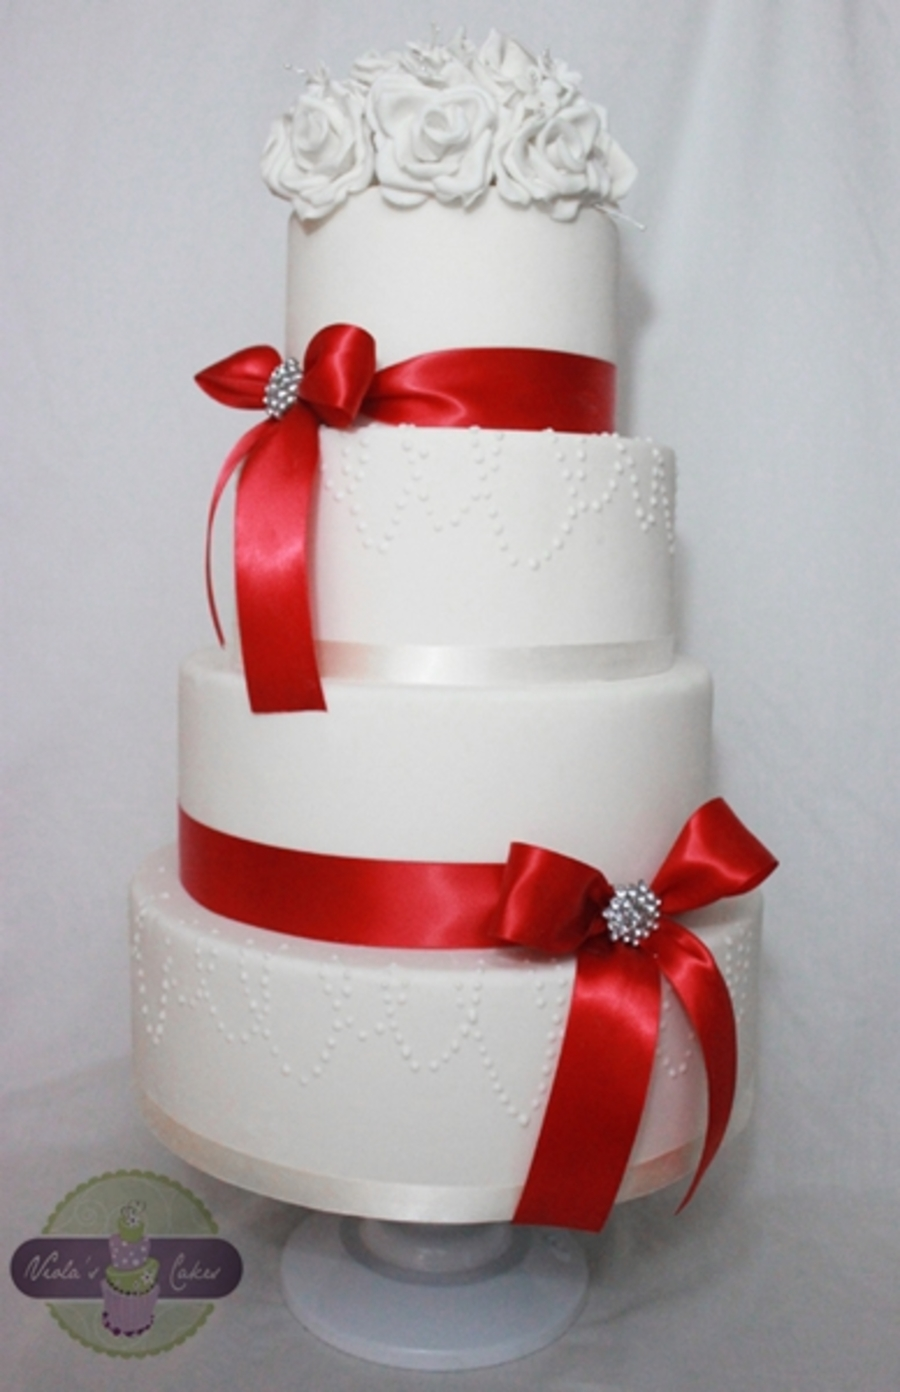 Red And White Wedding Cake W/ Roses  on Cake Central